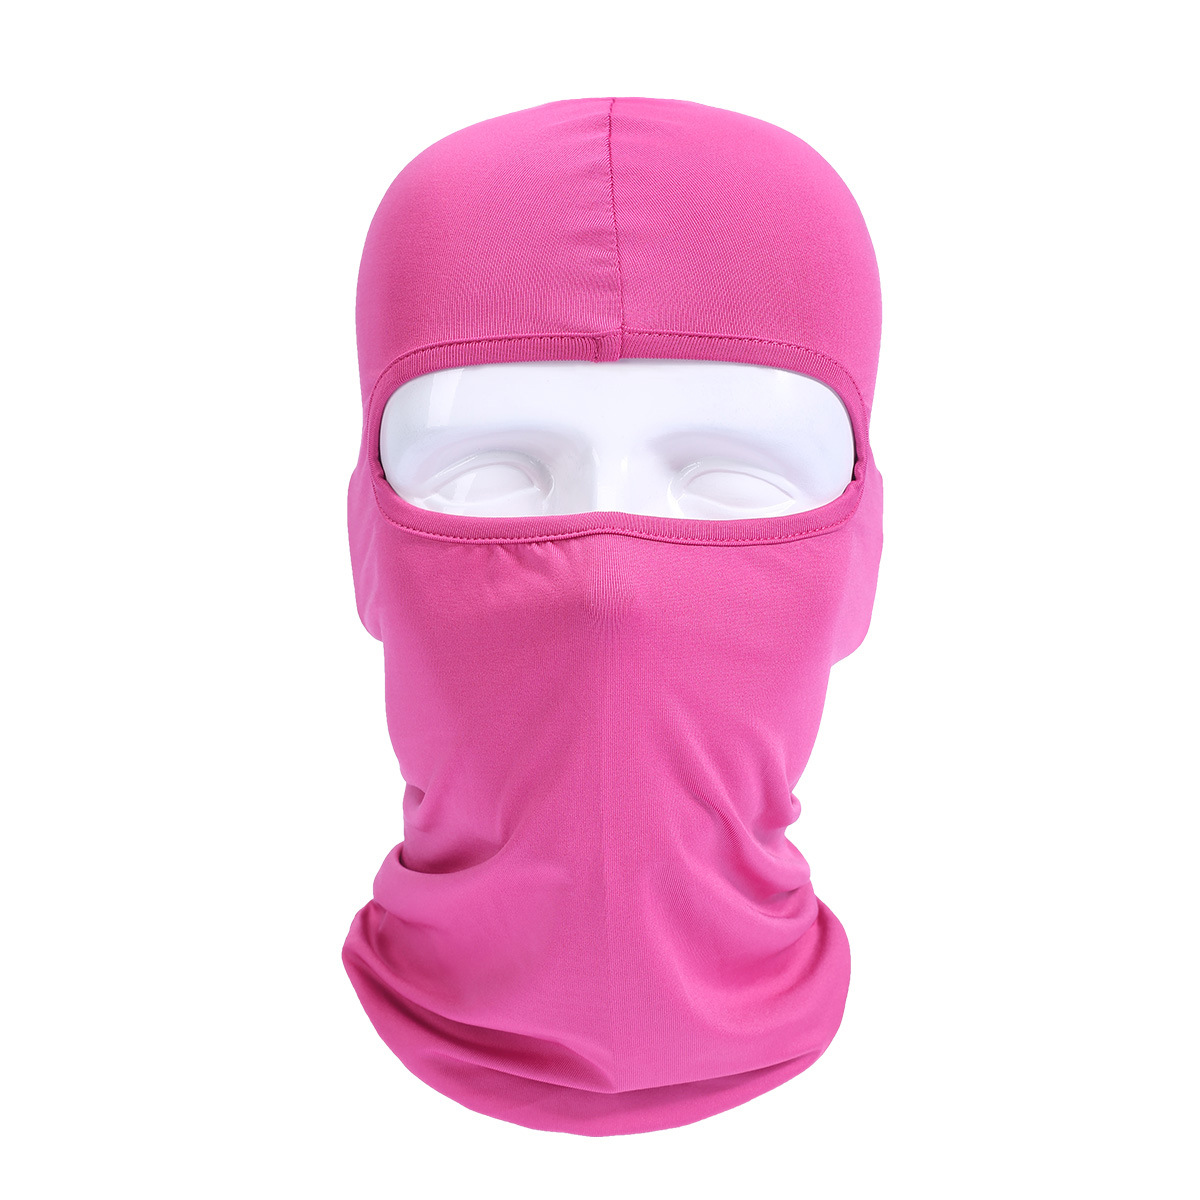 Balaclava-Breathable-Quick-Dry-Head-Cover-Motorcycle-Tactical-Military-Army-Airs